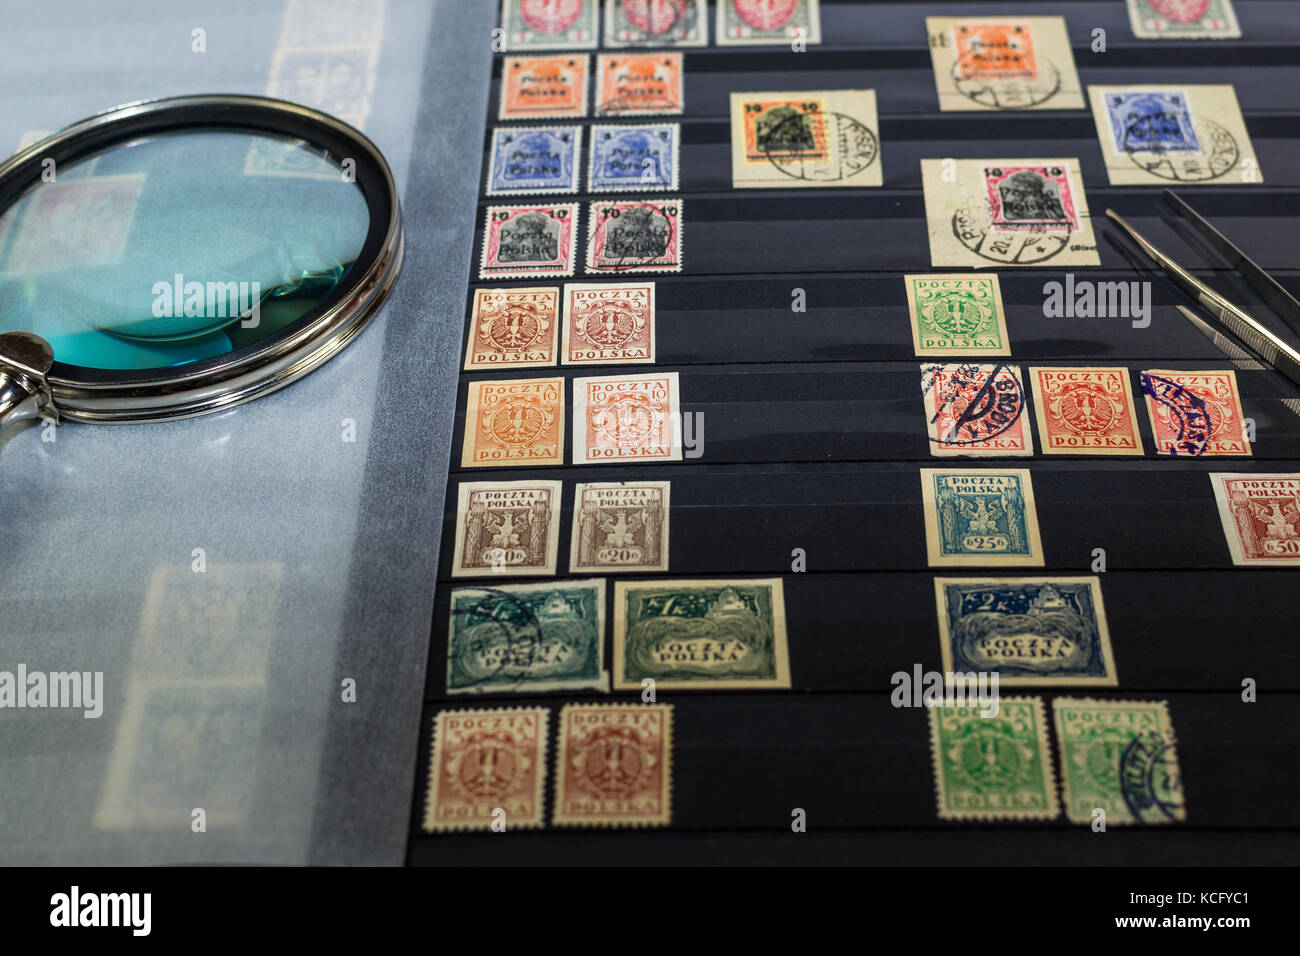 Collection of postage stamps - Stock Image